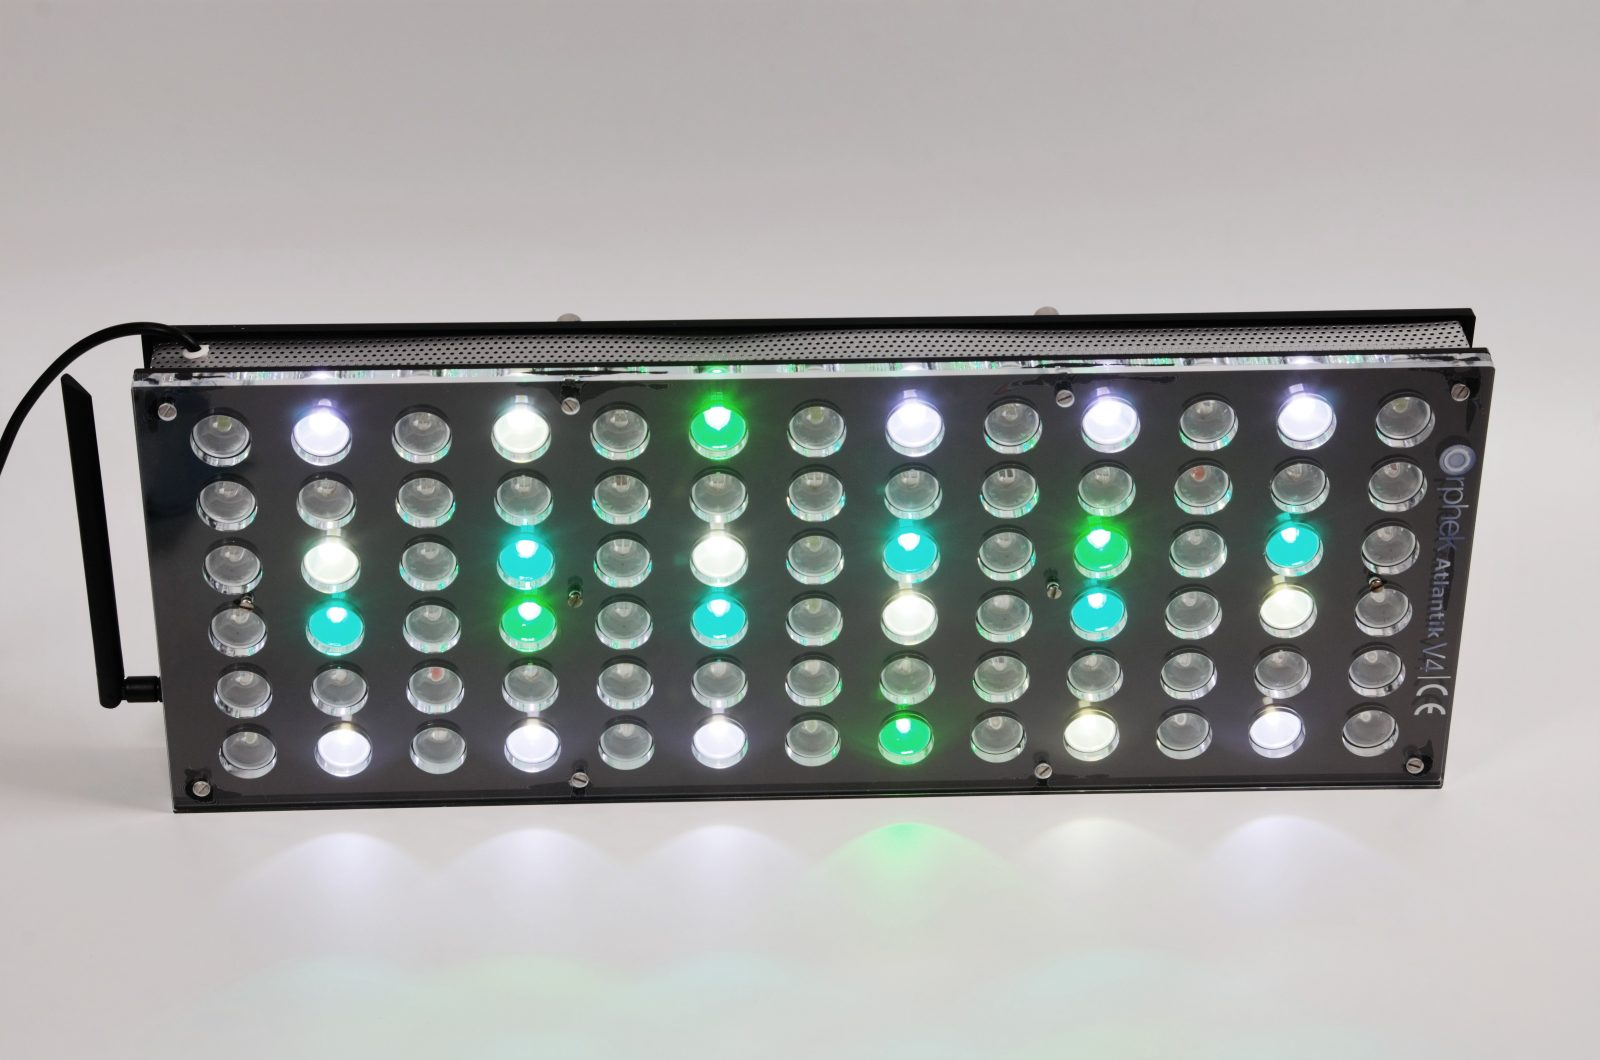 Orphek-Aquarium-LED-Lighting-Reef-Atlantik-V4-light-on-channel 1